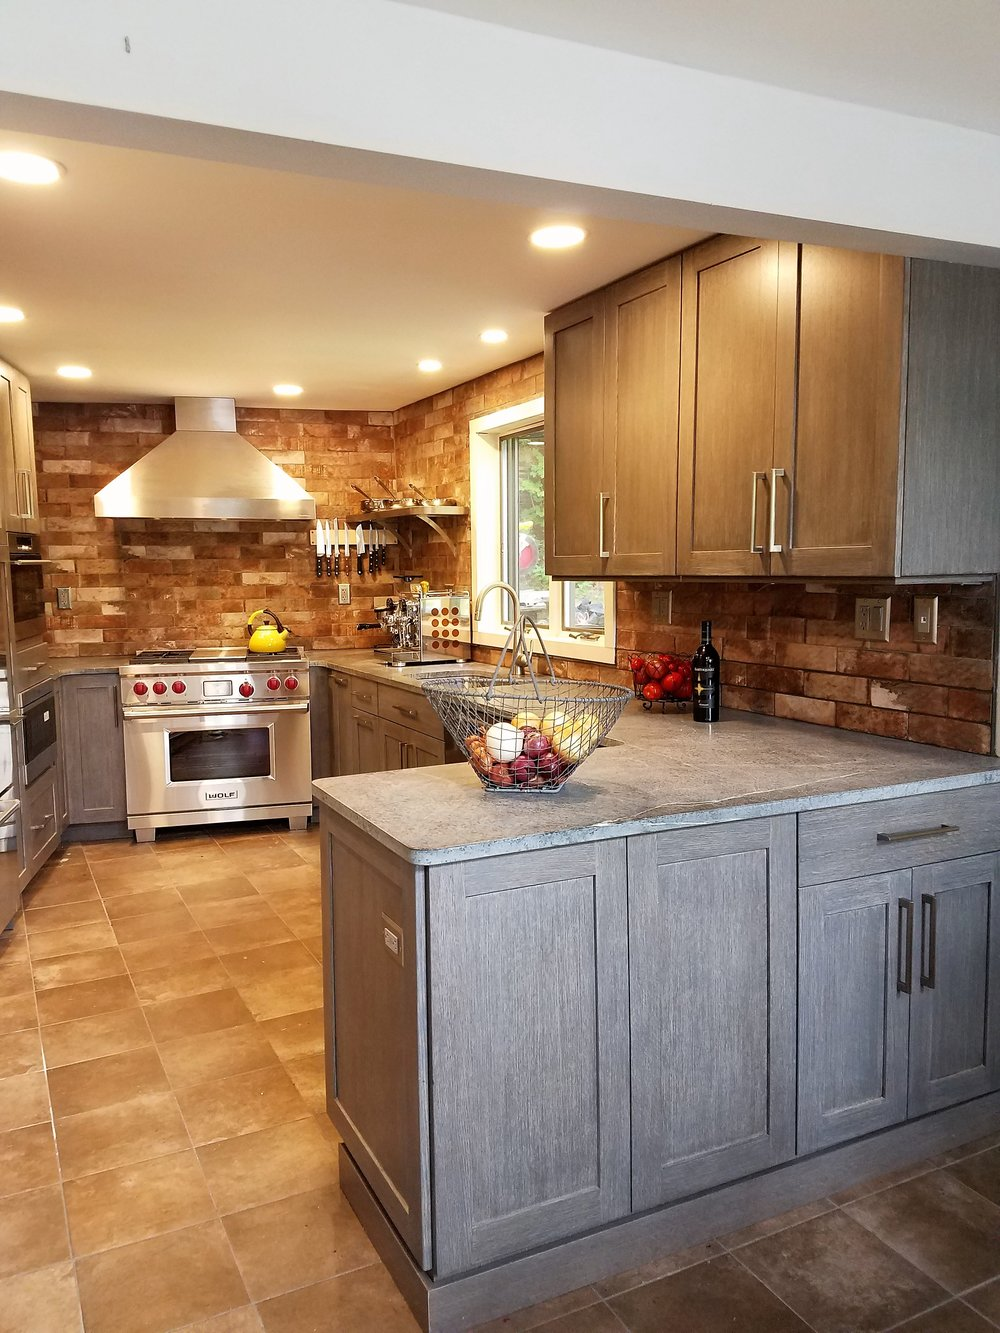 Copy of Rustic Grey and Brown Kitchen